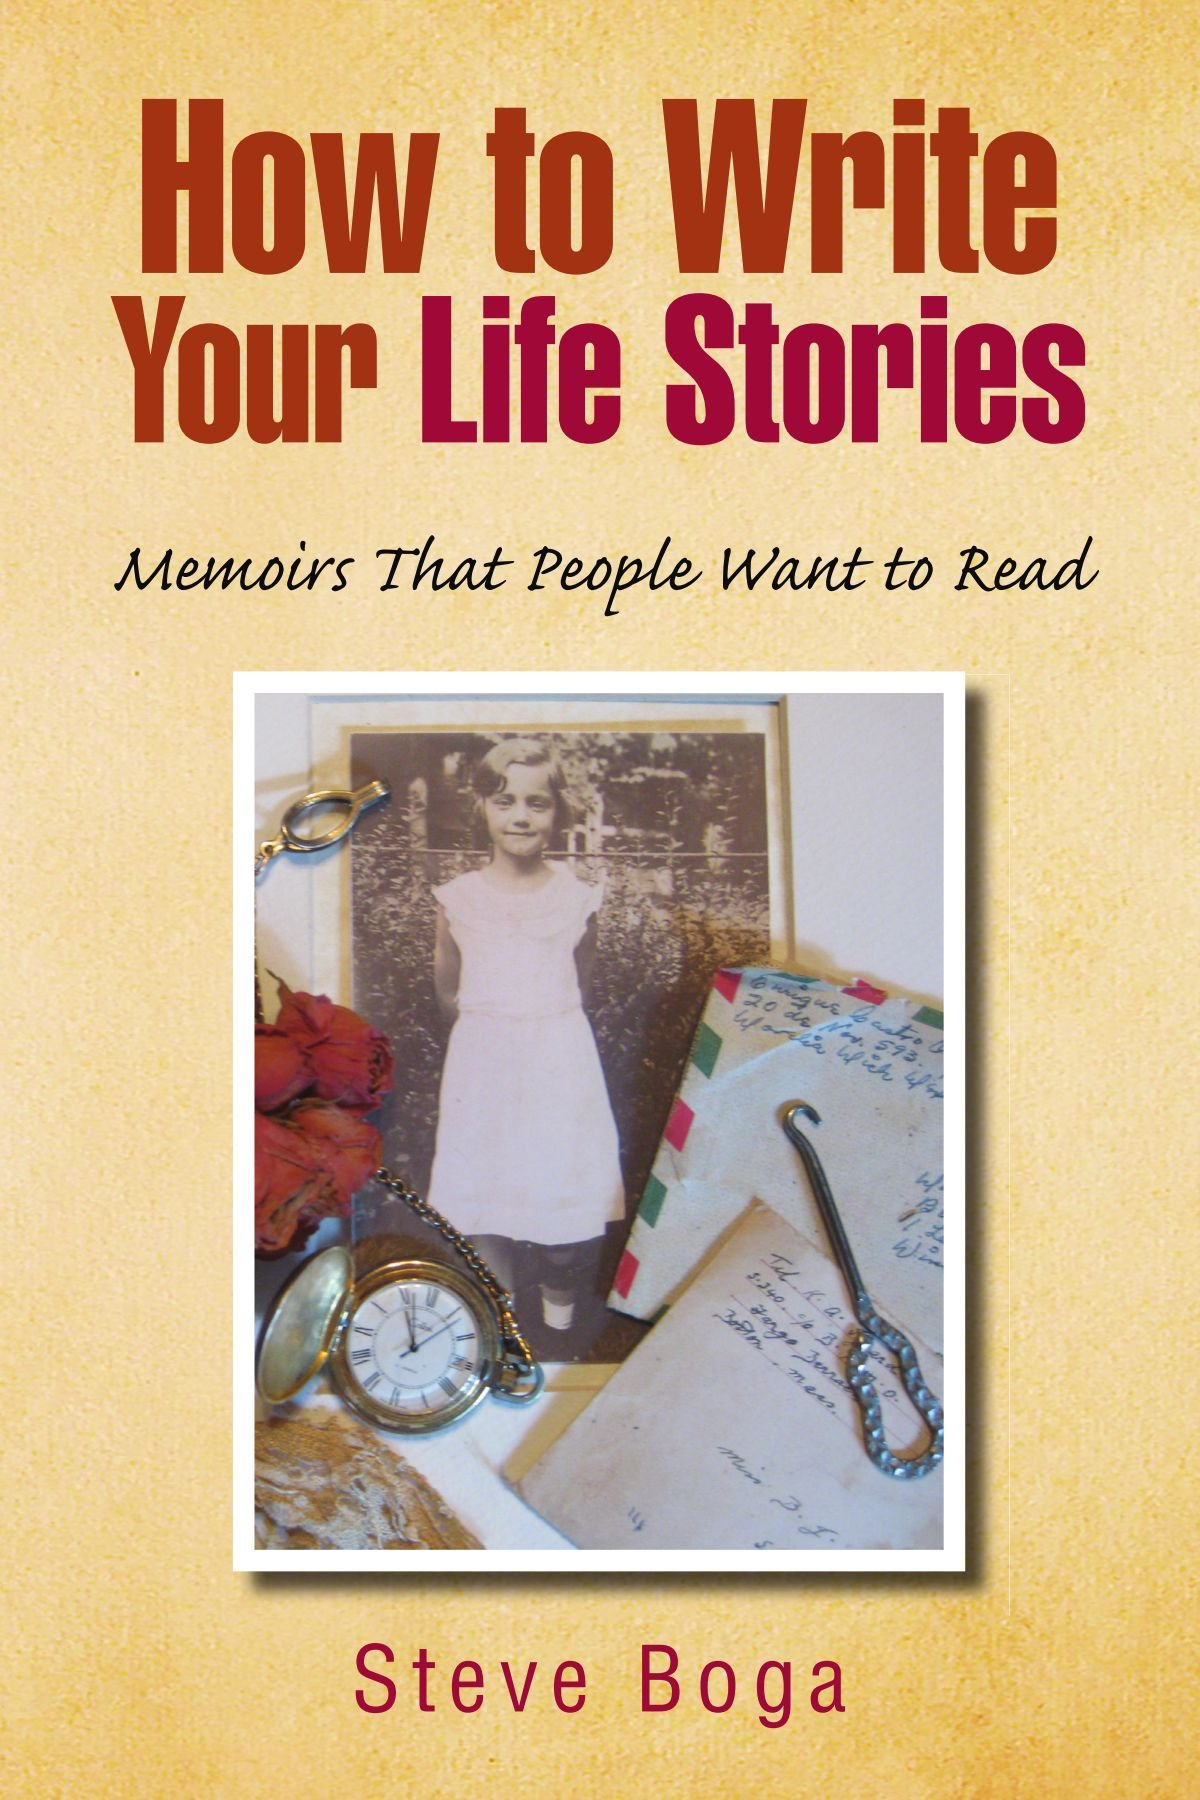 How to Write Your Life Stories - Memoirs that People Want to Read PDF